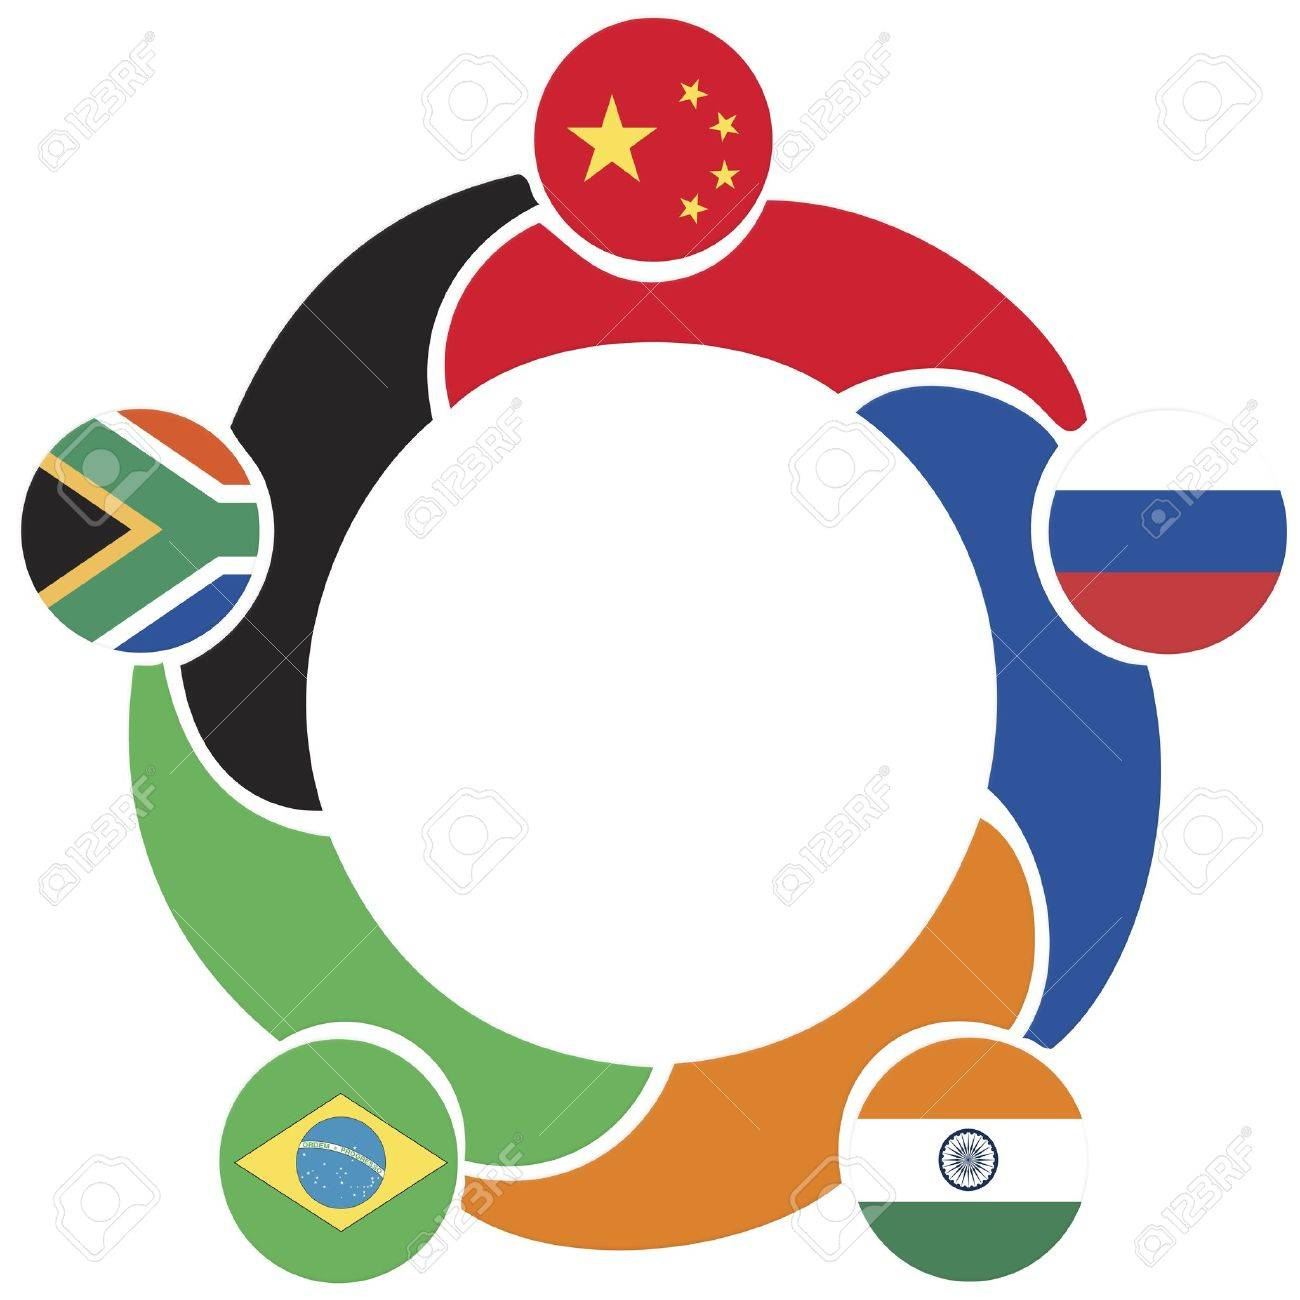 BRICS, the association of emerging national economies, Brazil, Russia, India, China, South Africa Stock Photo - 18982336